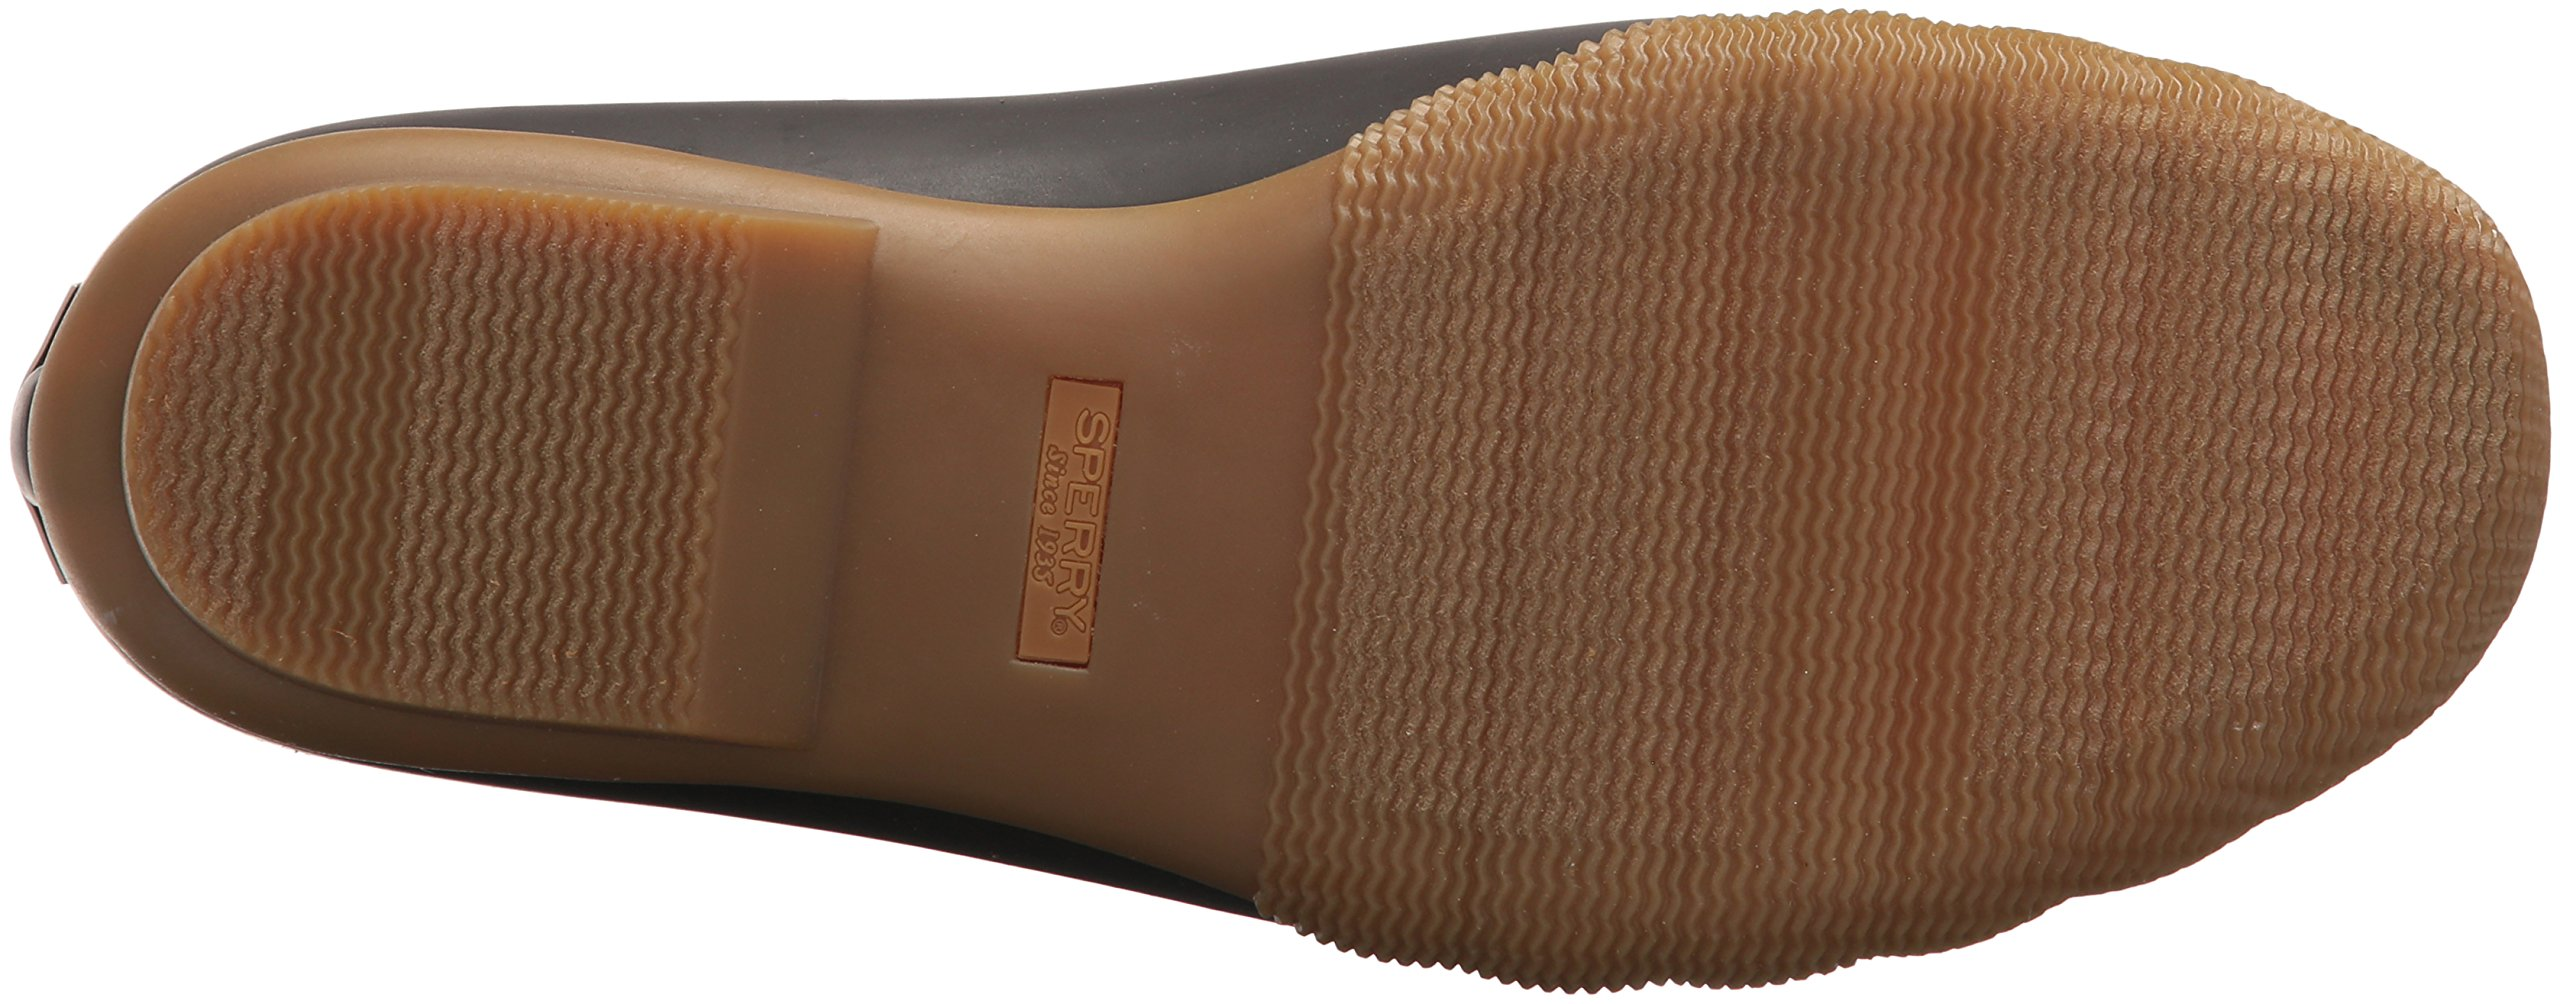 Sperry Top-Sider Women's Saltwater Rain Boot, Brown/Olive, 11 Medium US by Sperry Top-Sider (Image #3)